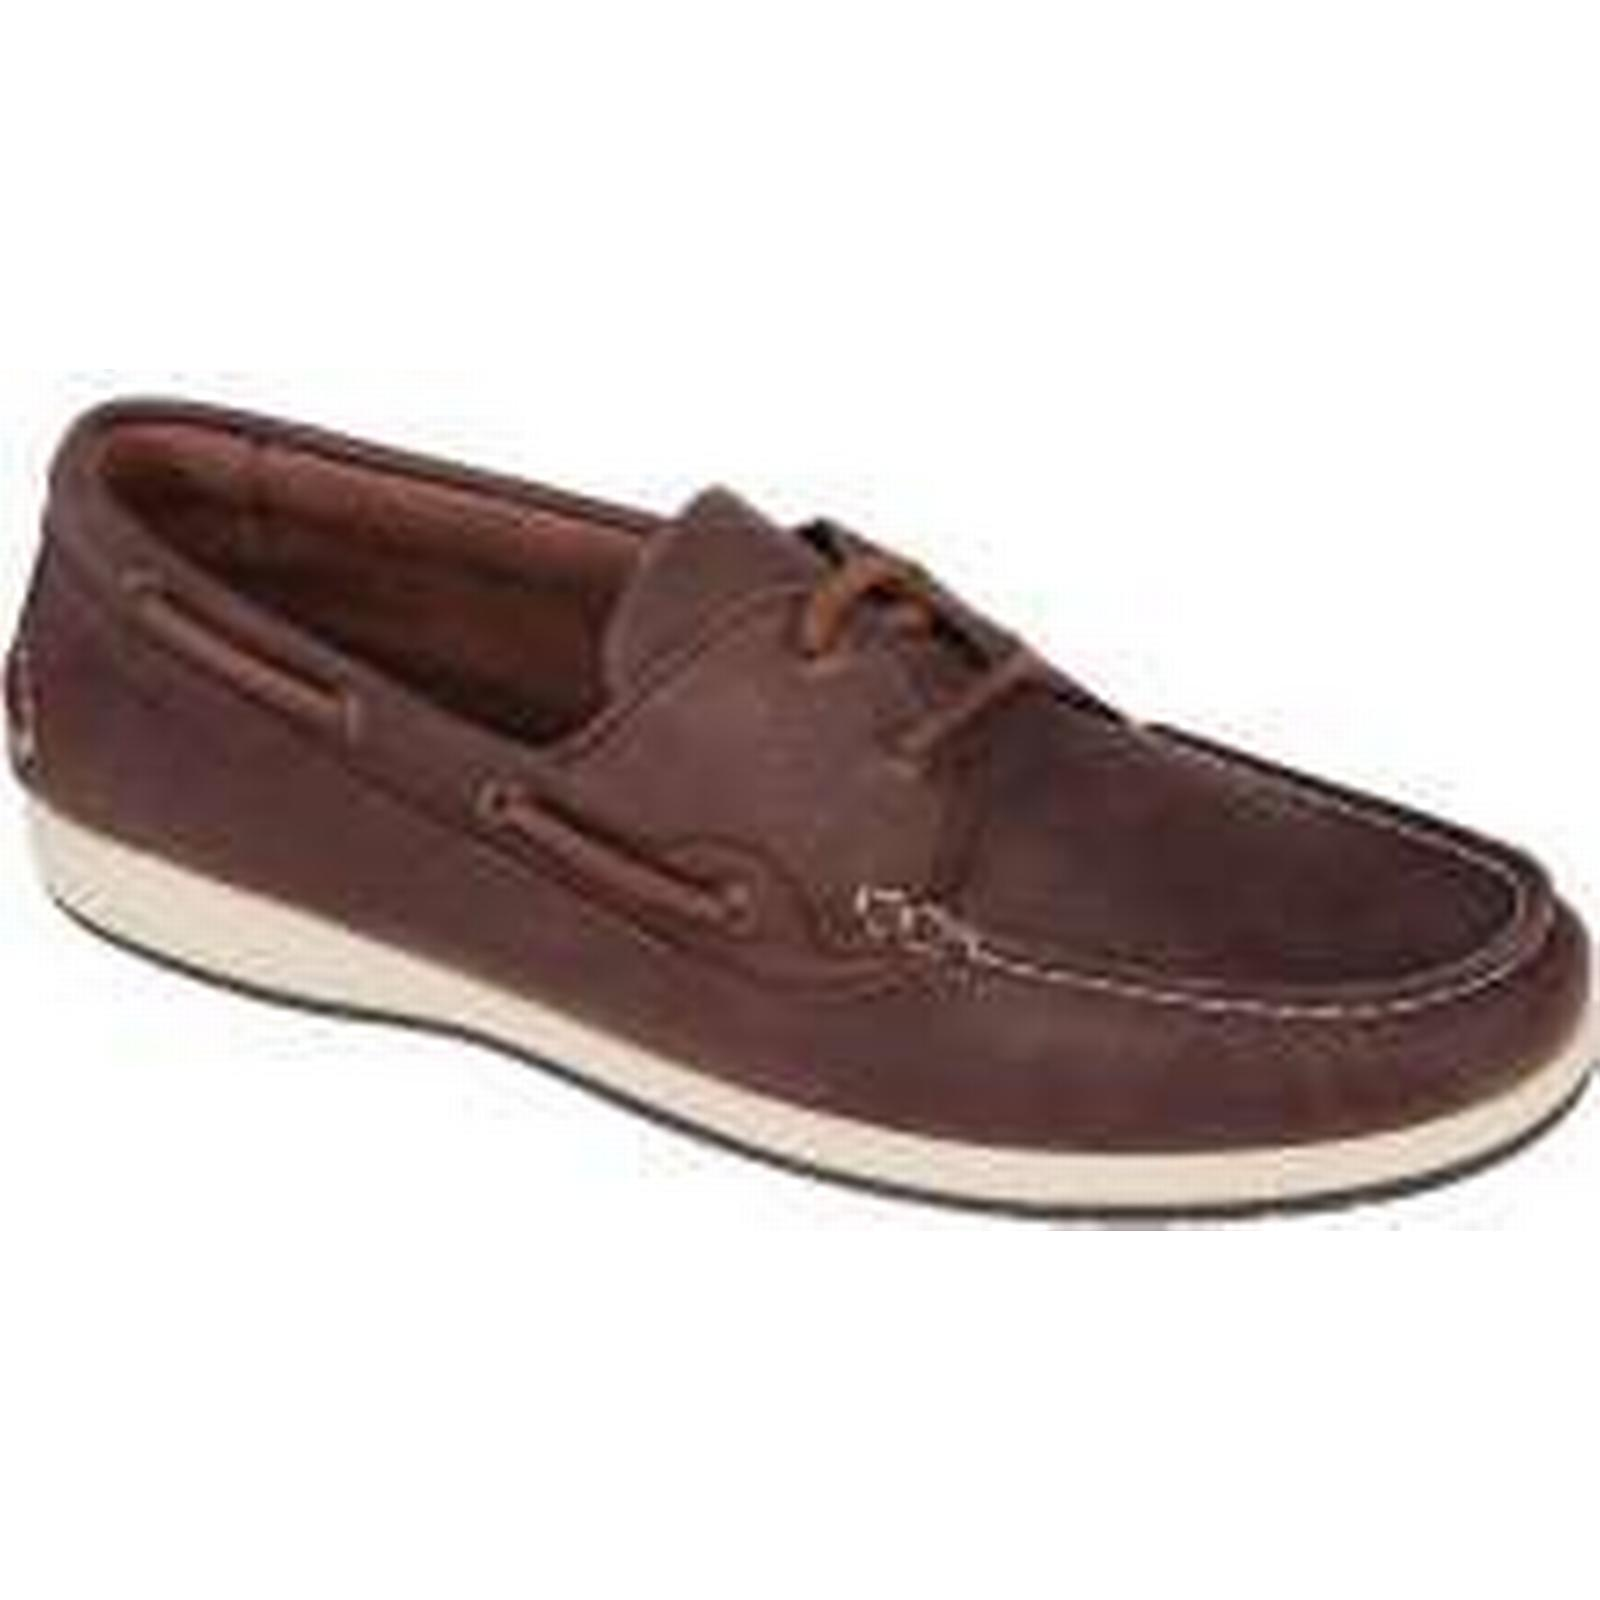 Dubarry Pacific Donkey X LT Deck Shoes, Donkey Pacific Brown, UK10 992e8f